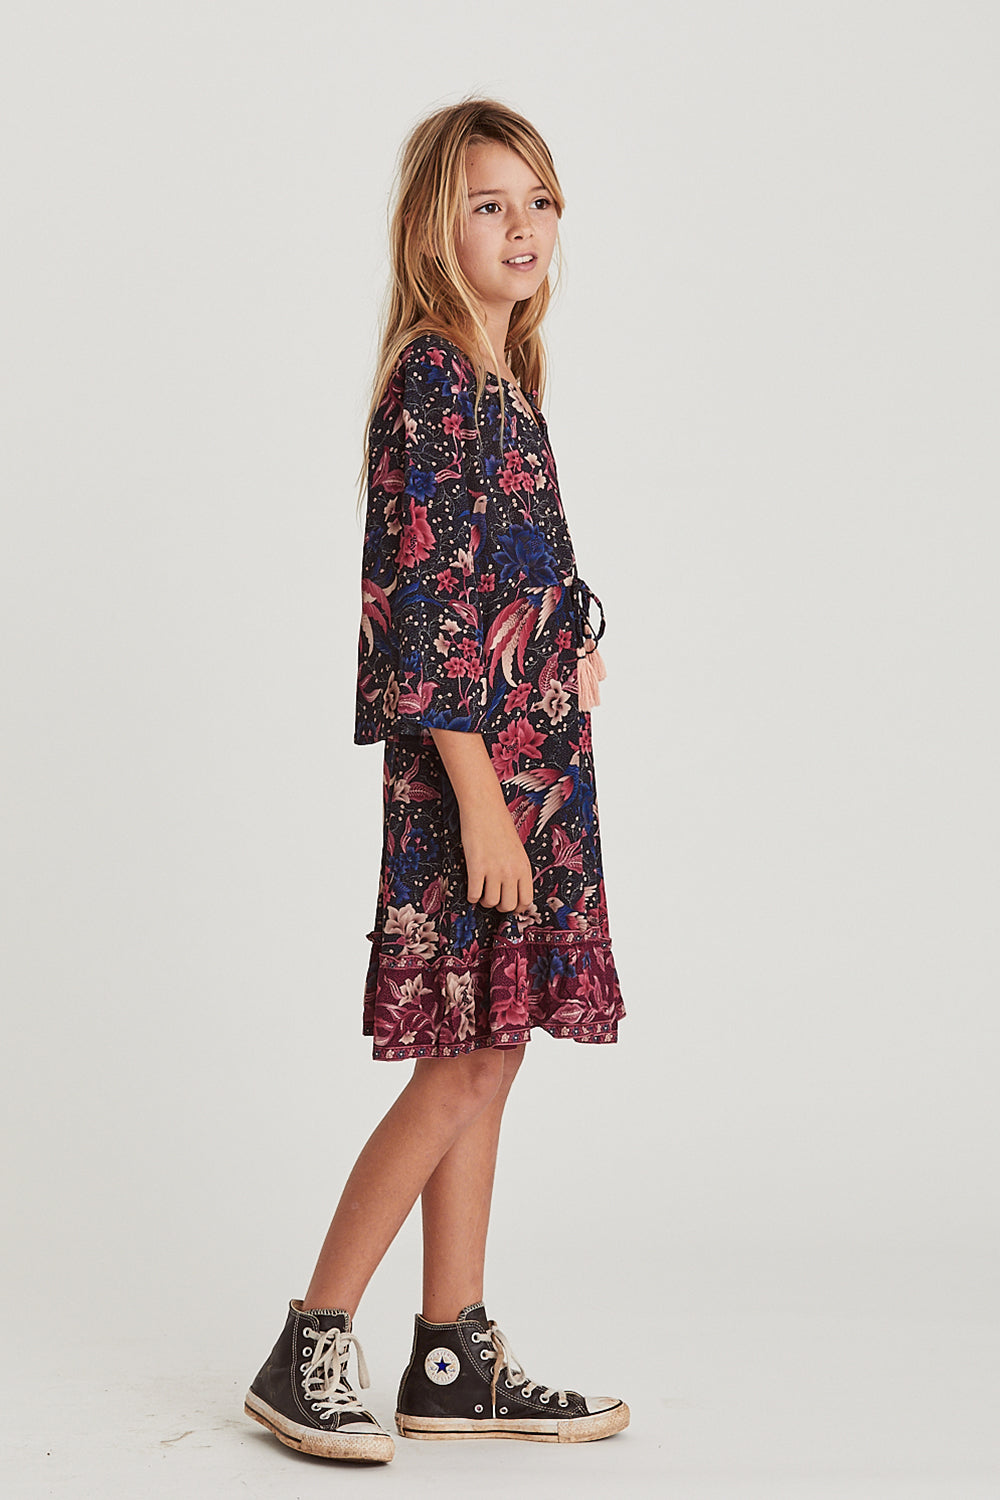 Ilona Littles Dress in Twilight